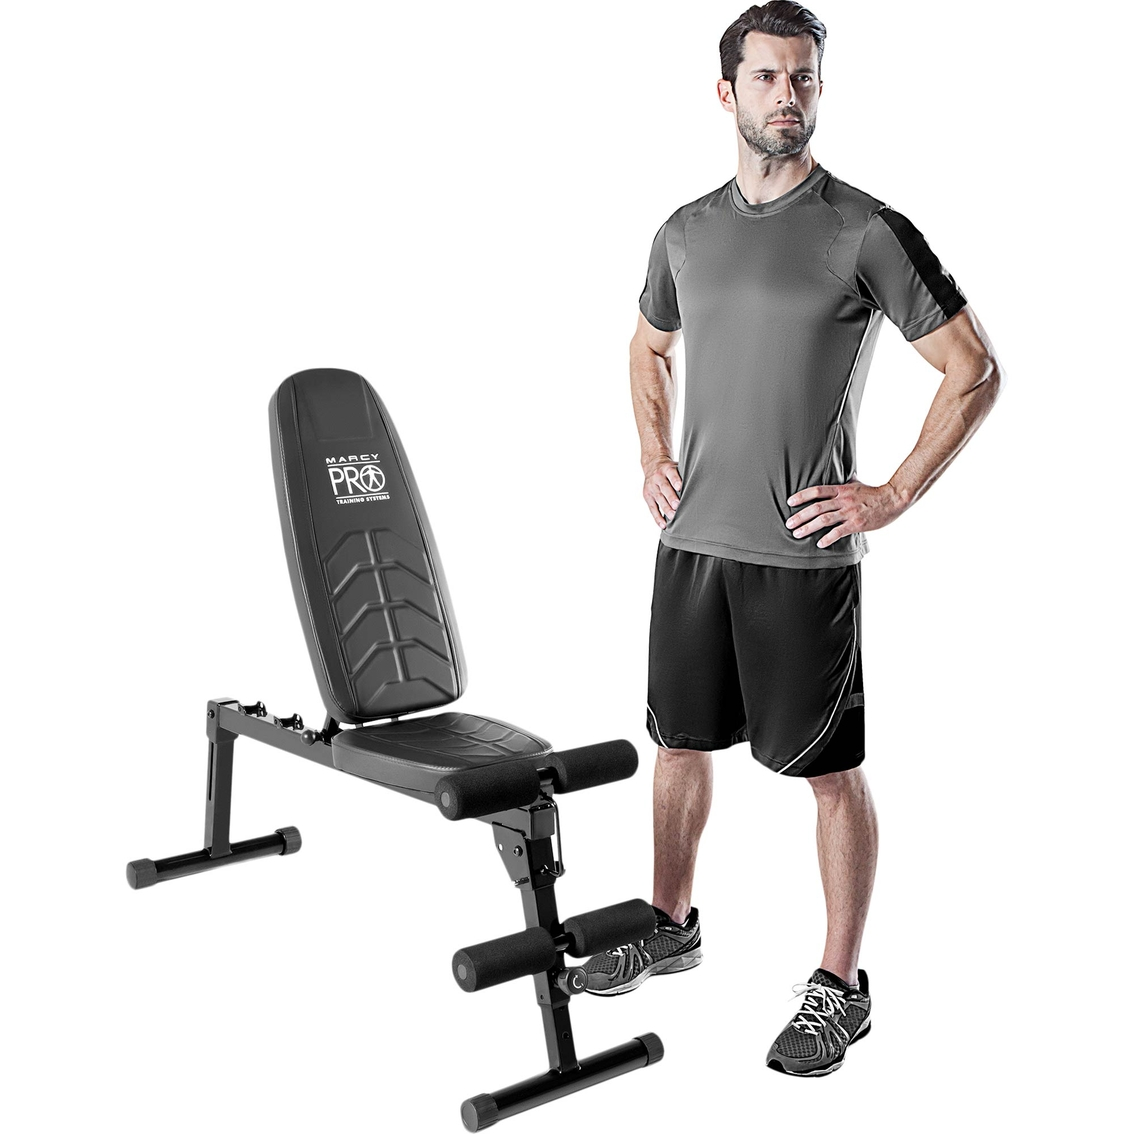 Impex Marcy Deluxe Utility Bench Pm10110 Strength Training Sports Outdoors Shop The Exchange